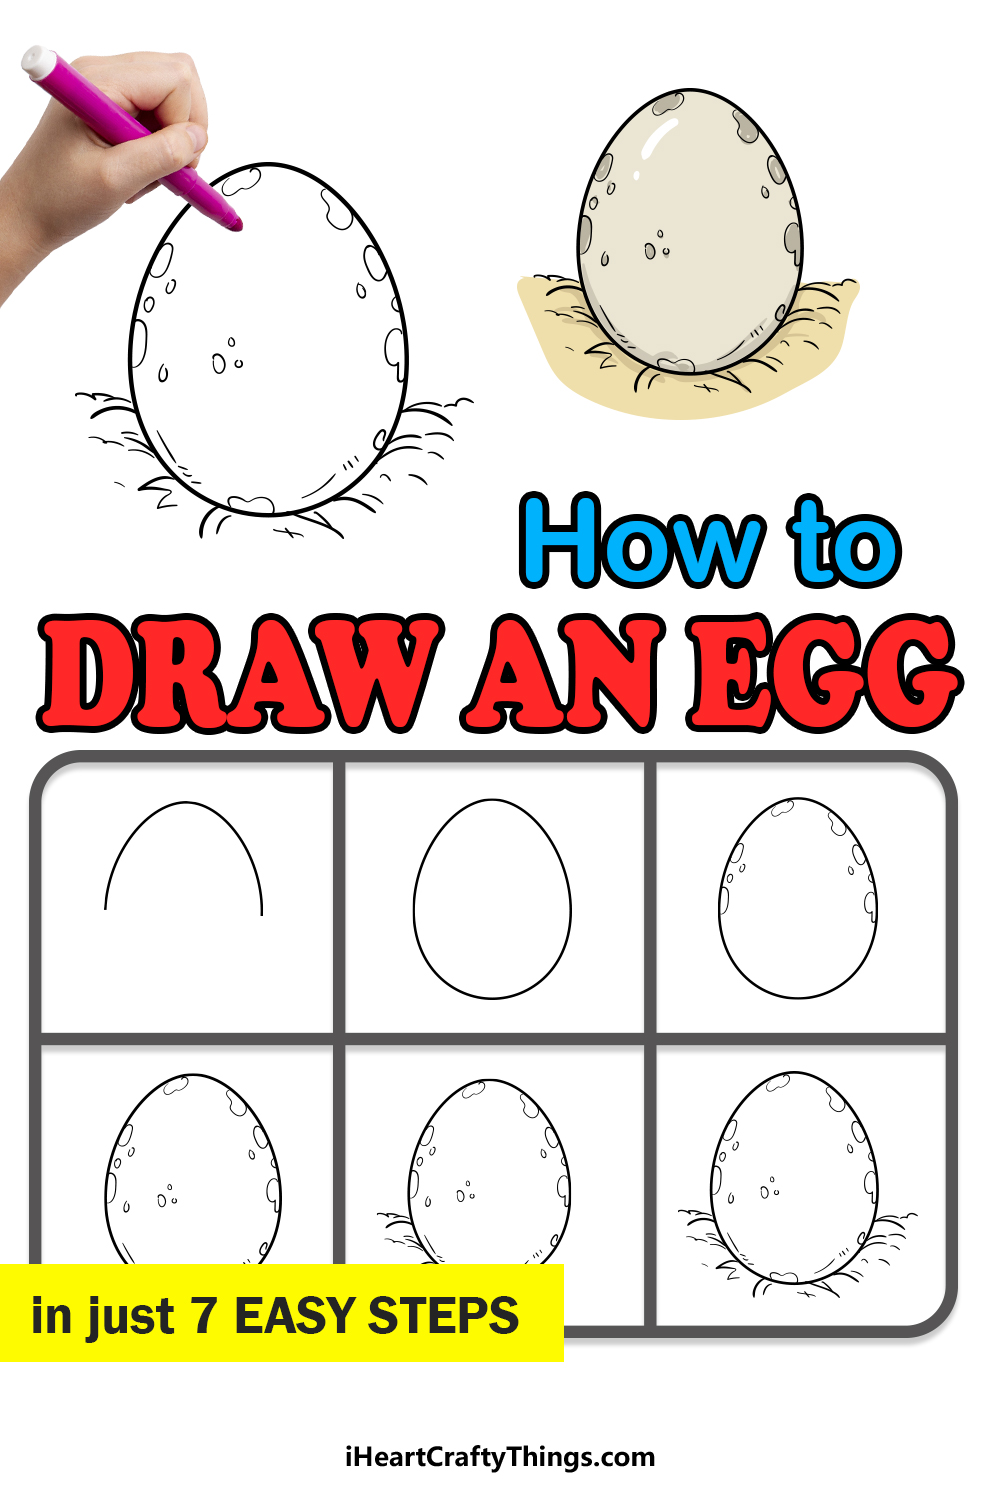 how to draw an egg in 7 easy steps